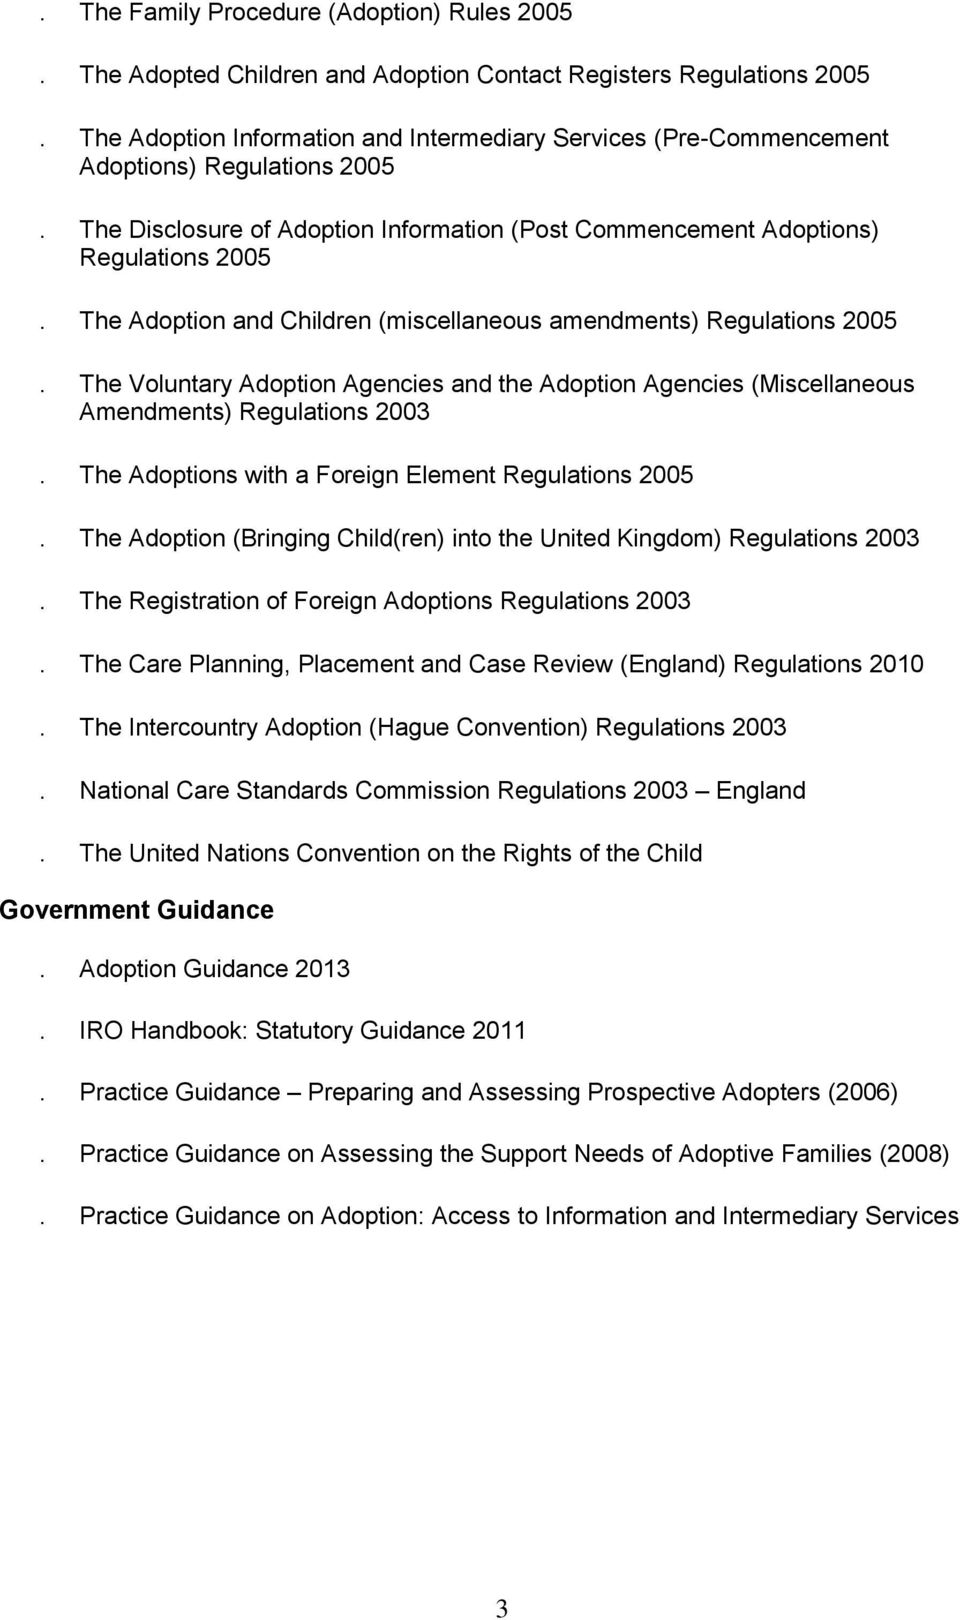 The Adoption and Children (miscellaneous amendments) Regulations 2005. The Voluntary Adoption Agencies and the Adoption Agencies (Miscellaneous Amendments) Regulations 2003.